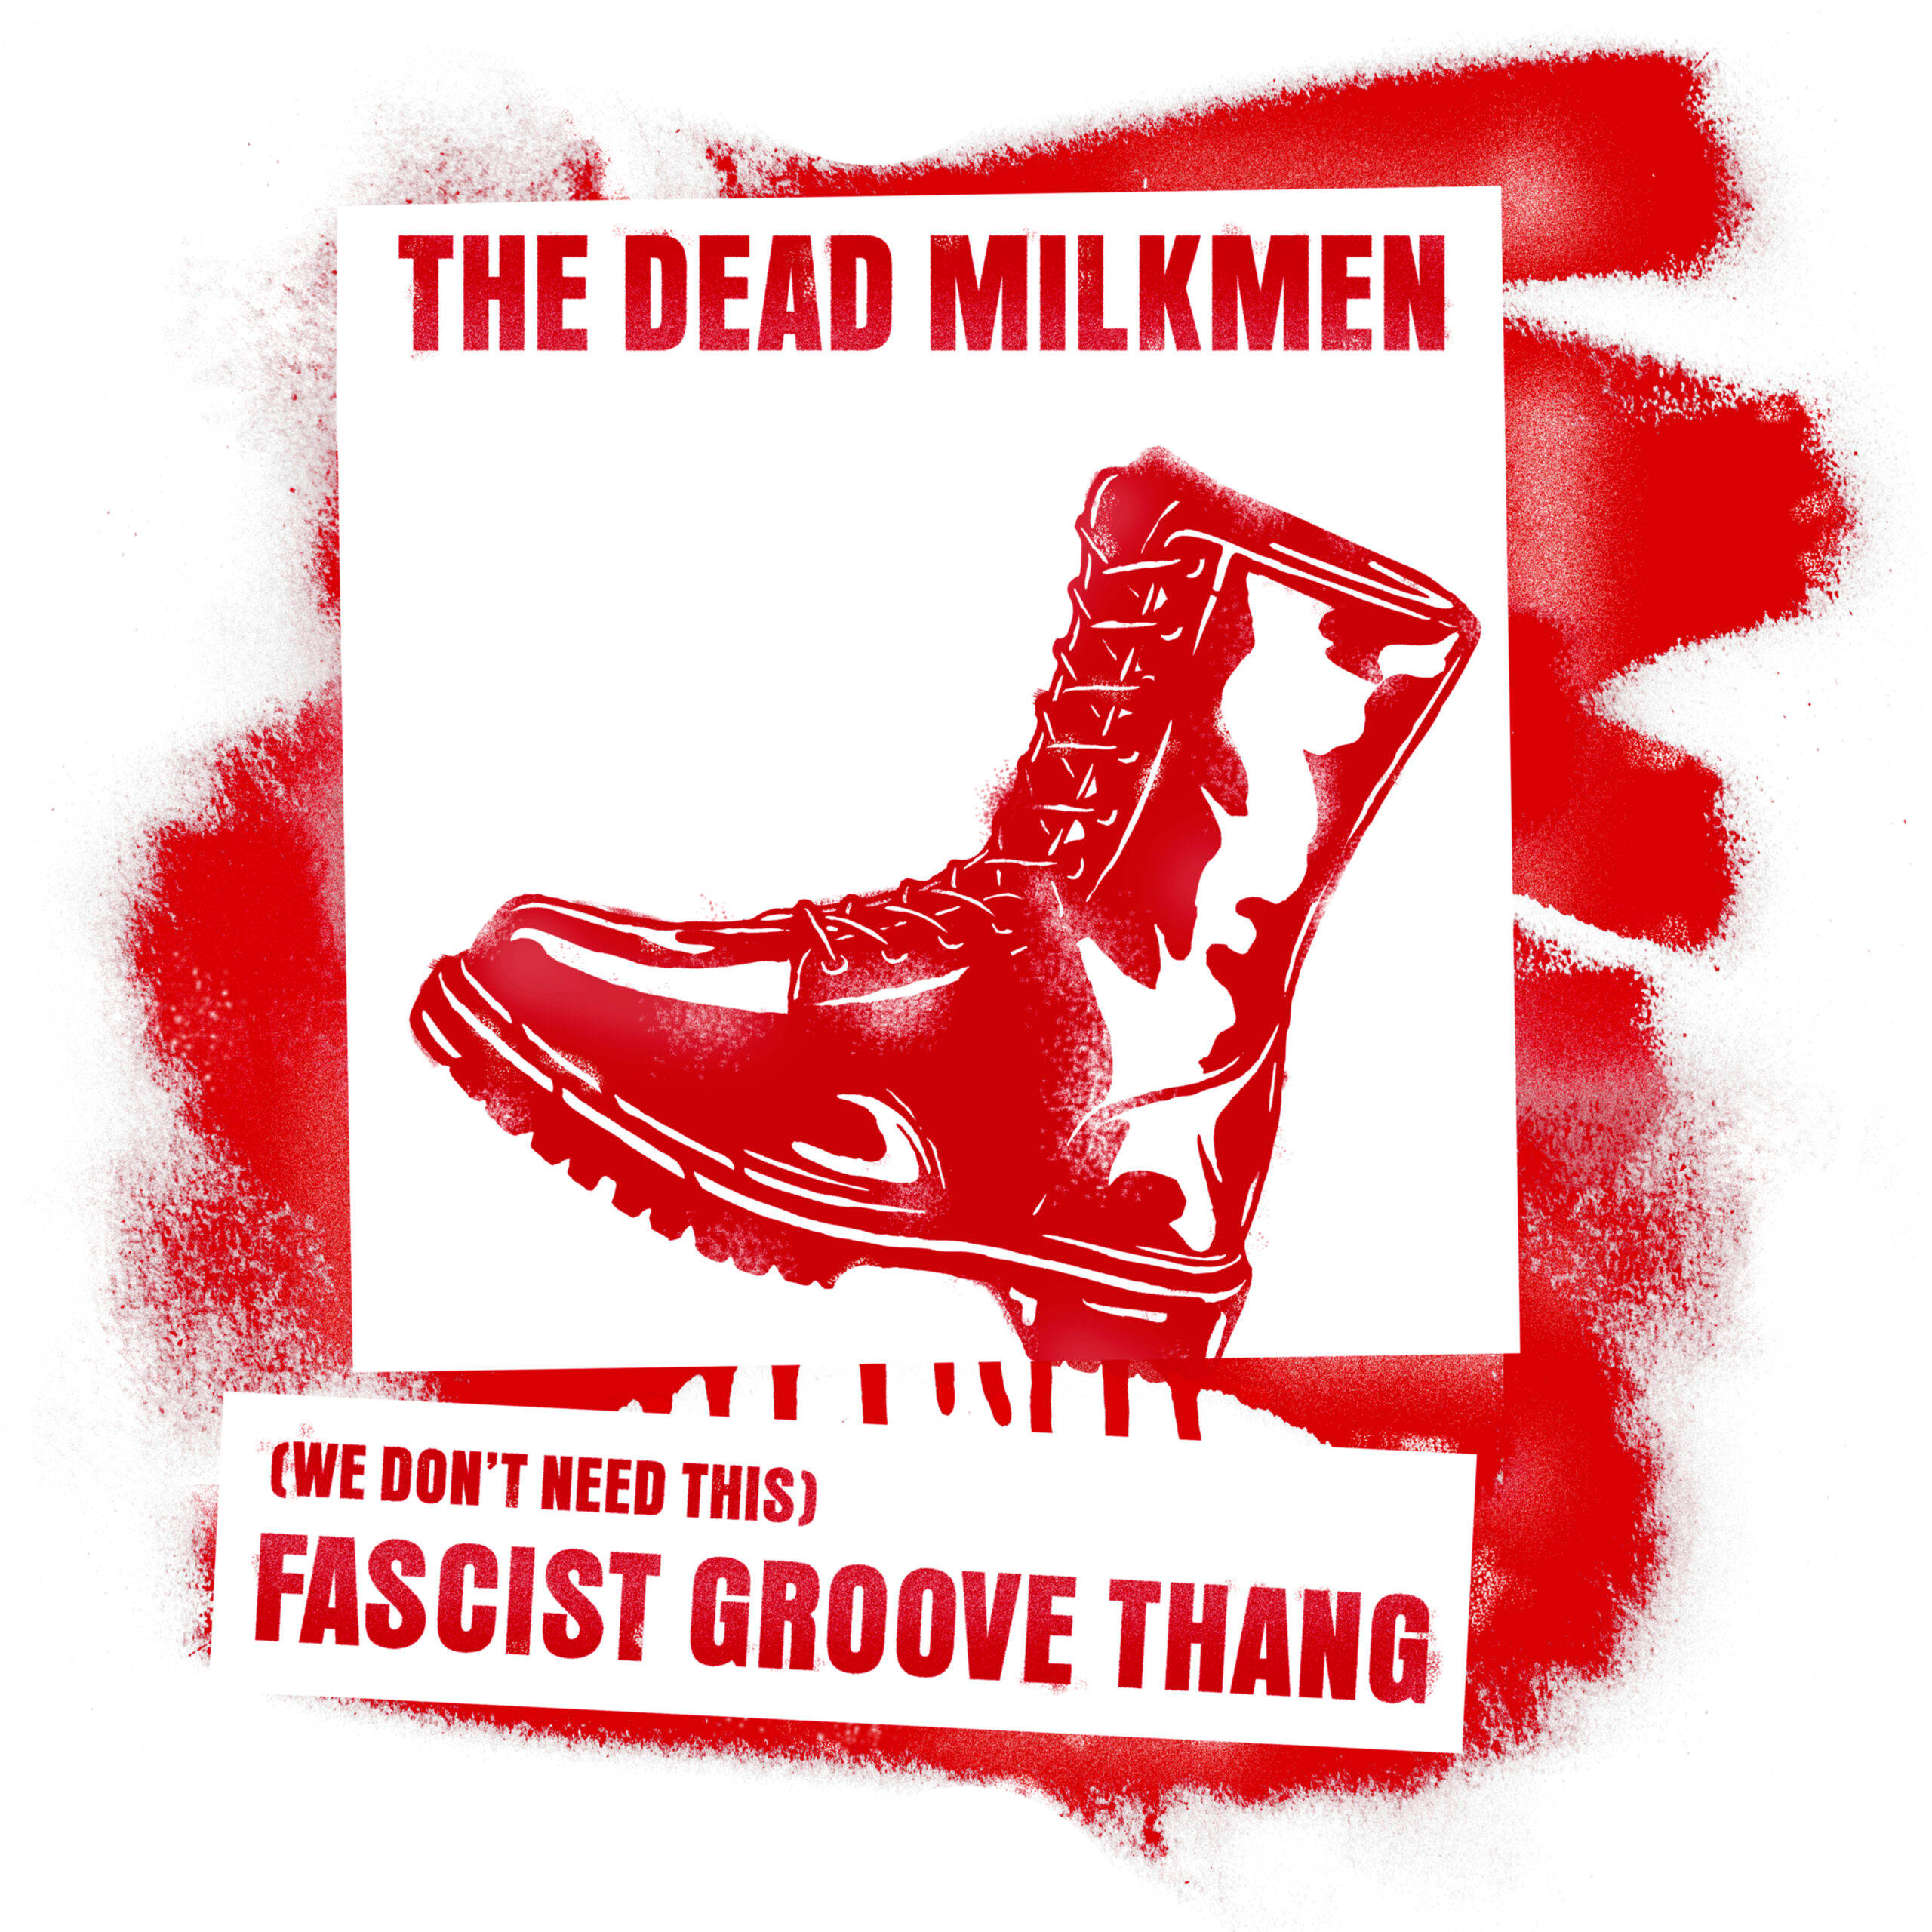 The Dead Milkmen – (We Don't Need This) Fascist Groove Thang